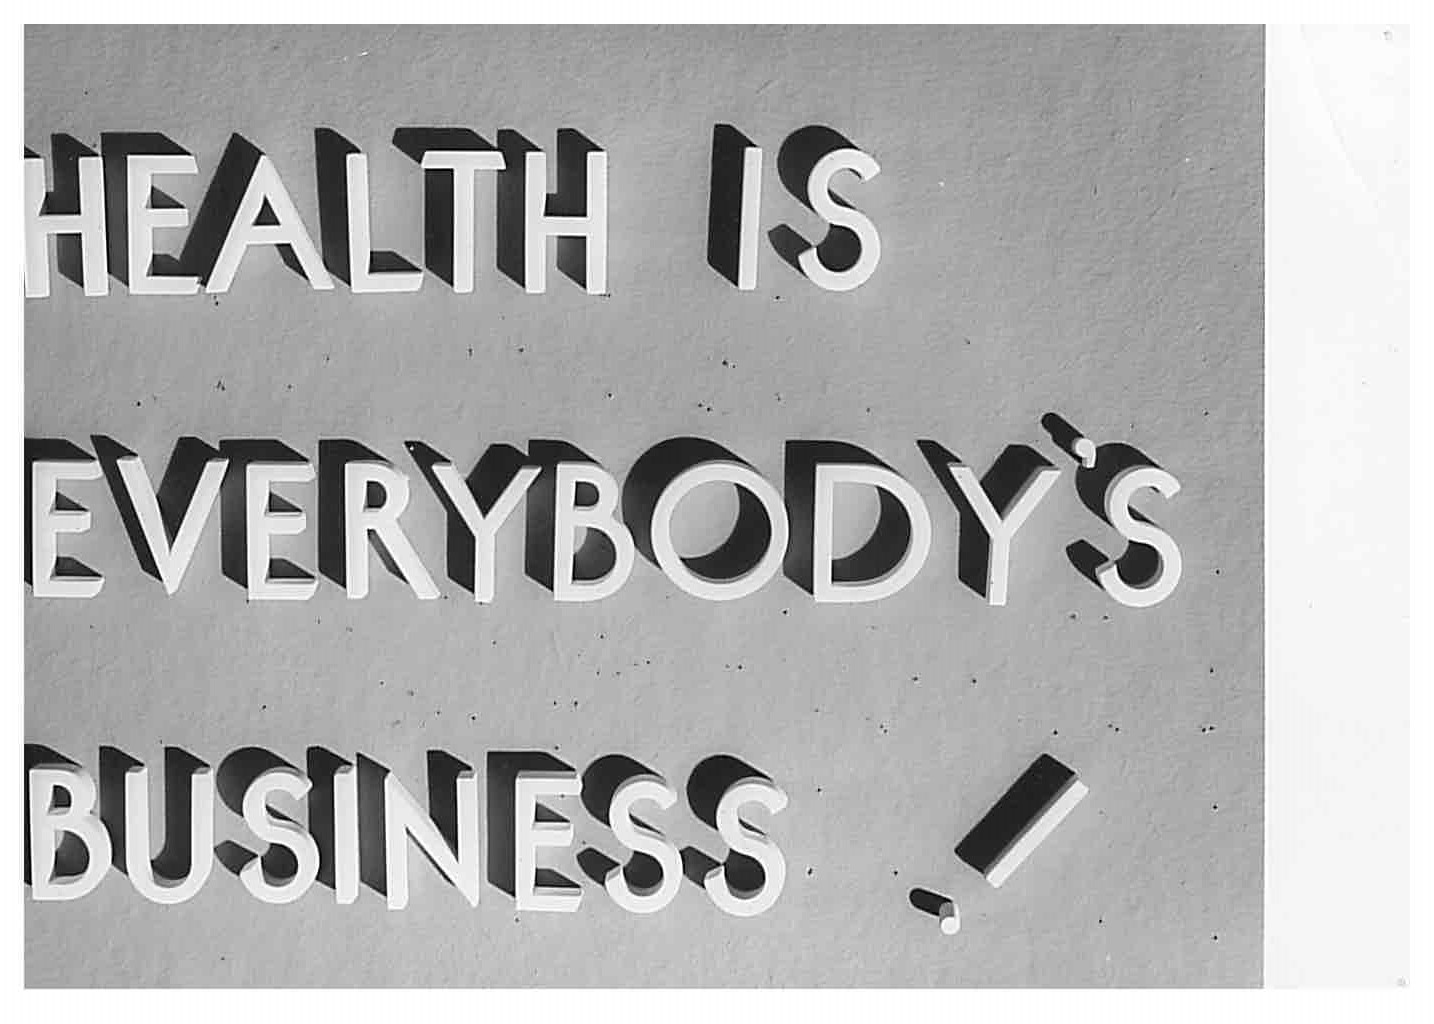 Health is everybodys business